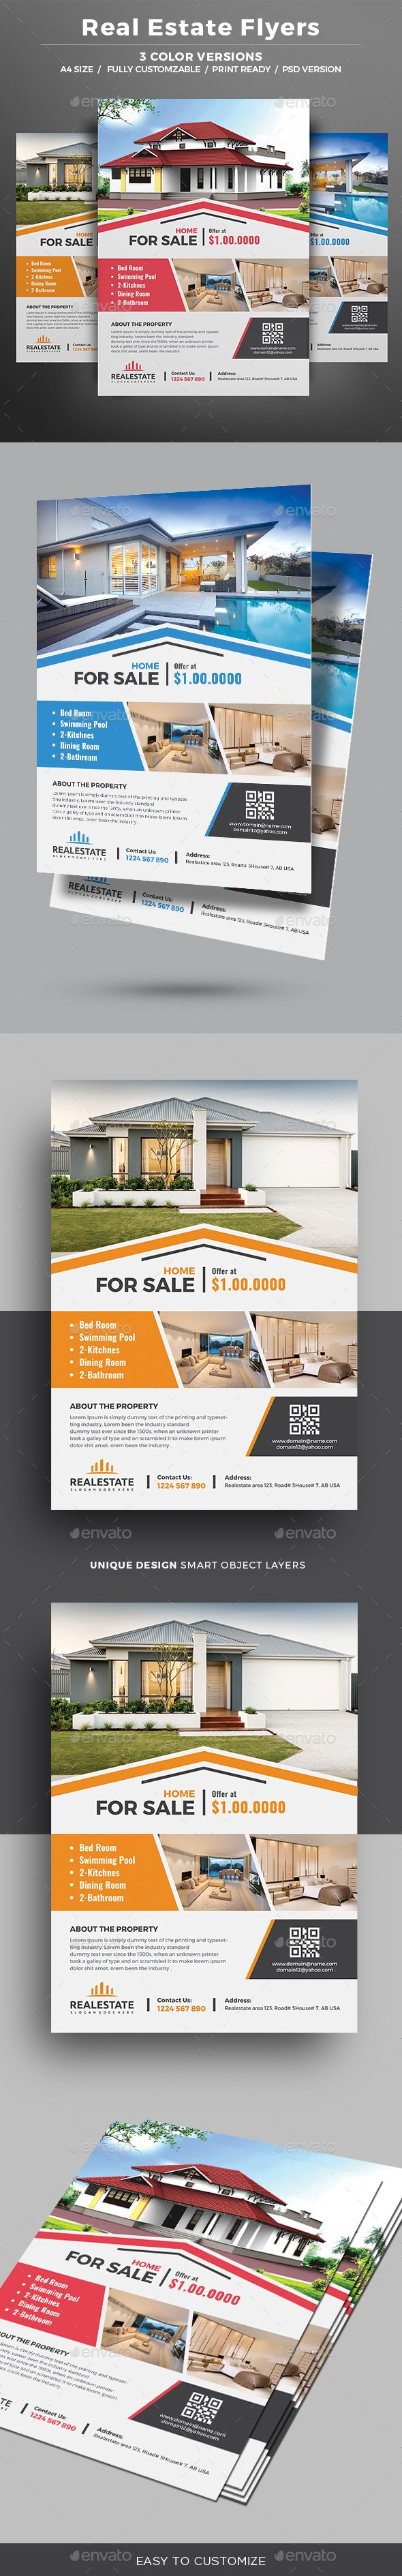 Real Estate Template%0A Real Estate Flyer Template PSD  Download here  https   graphicriver net